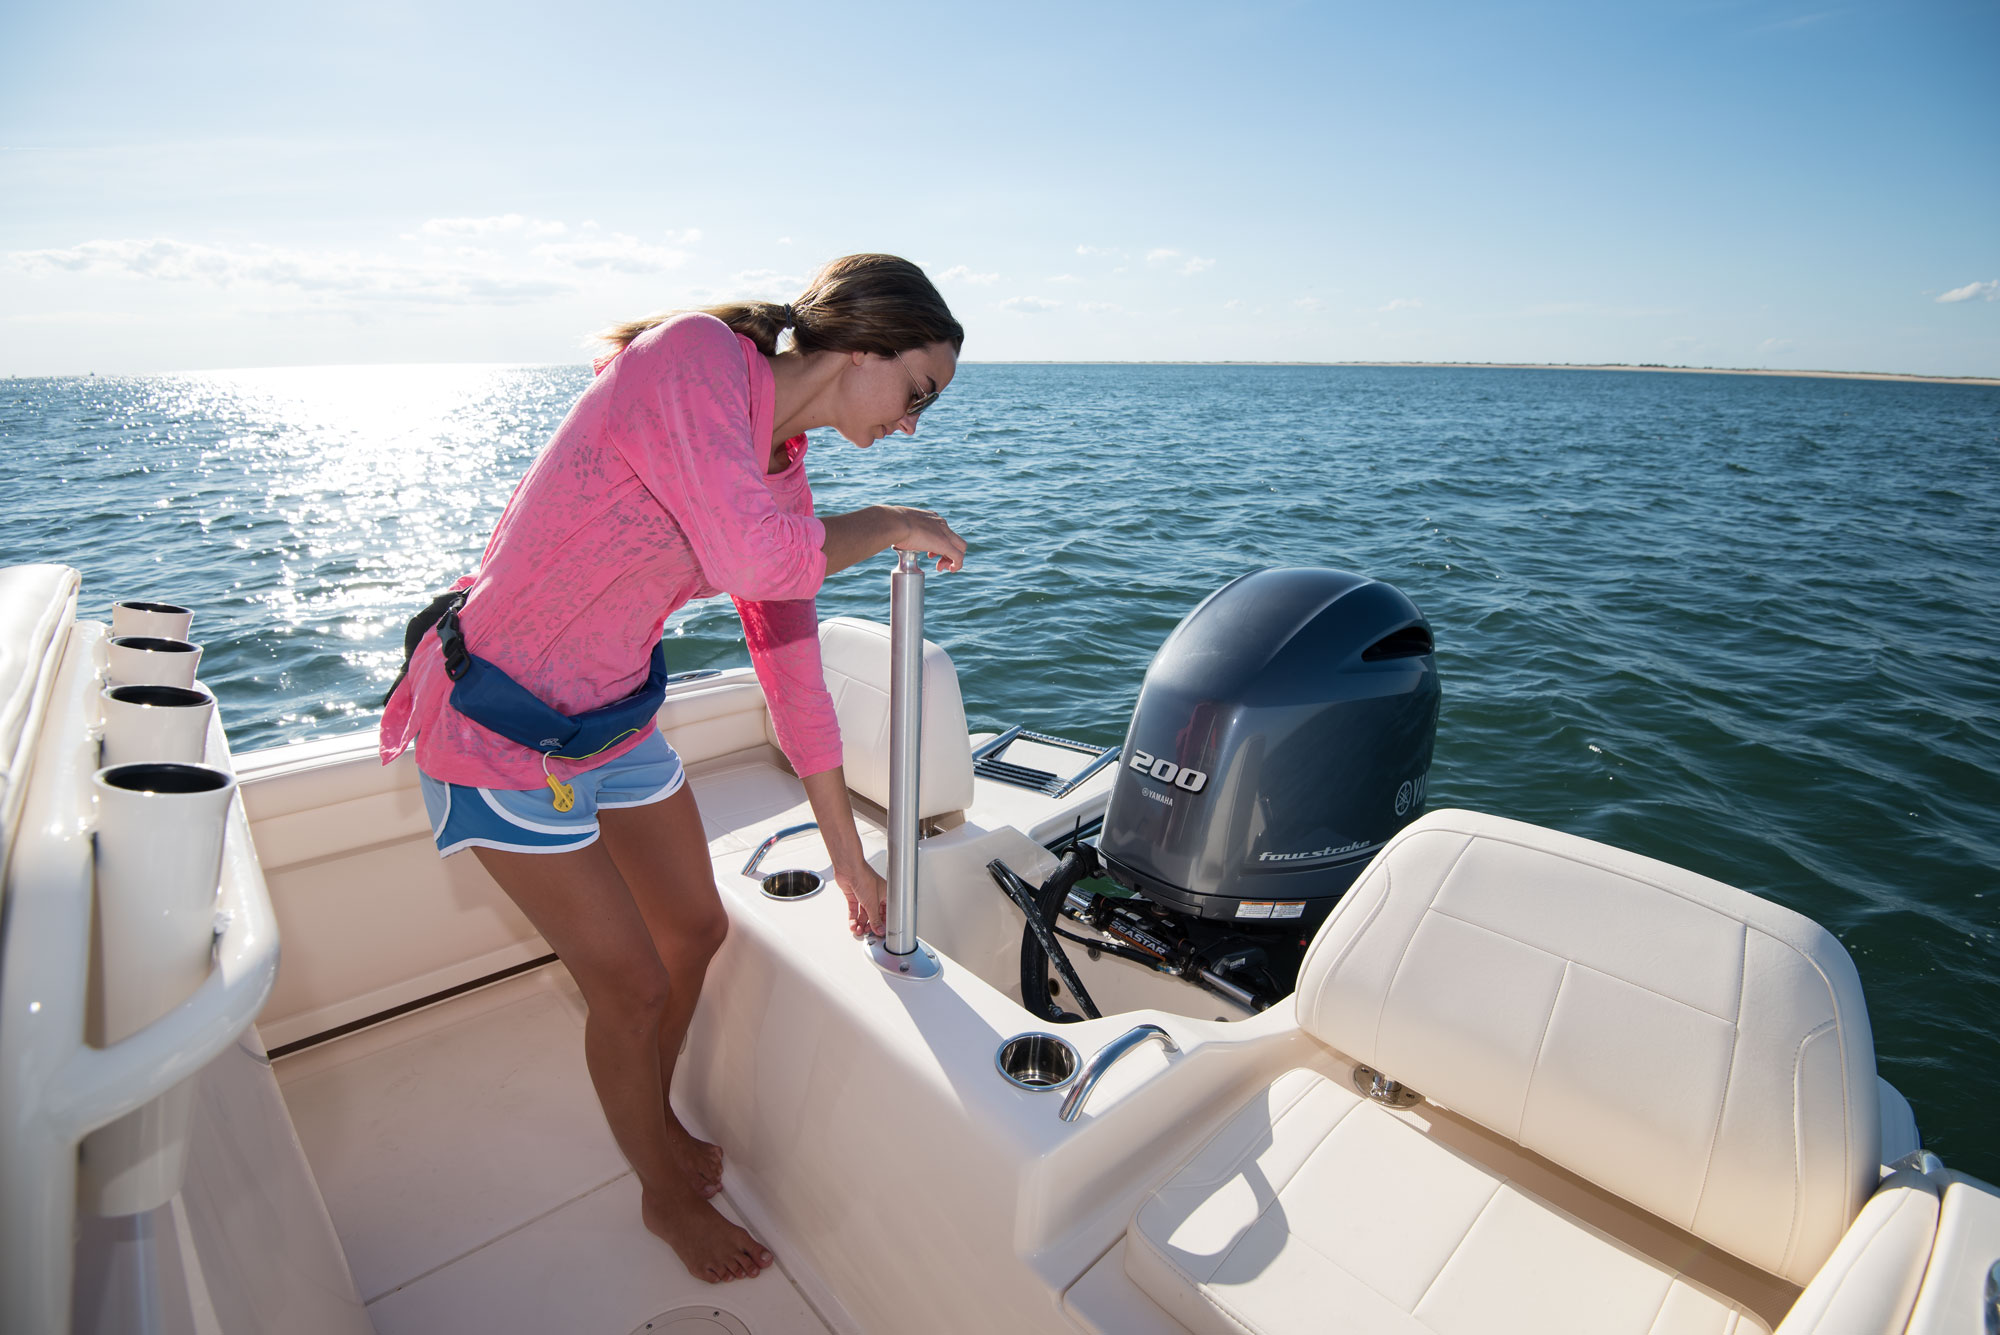 The Fisherman 216 ski pylon is easily accessible to deploy when enjoying watersports.